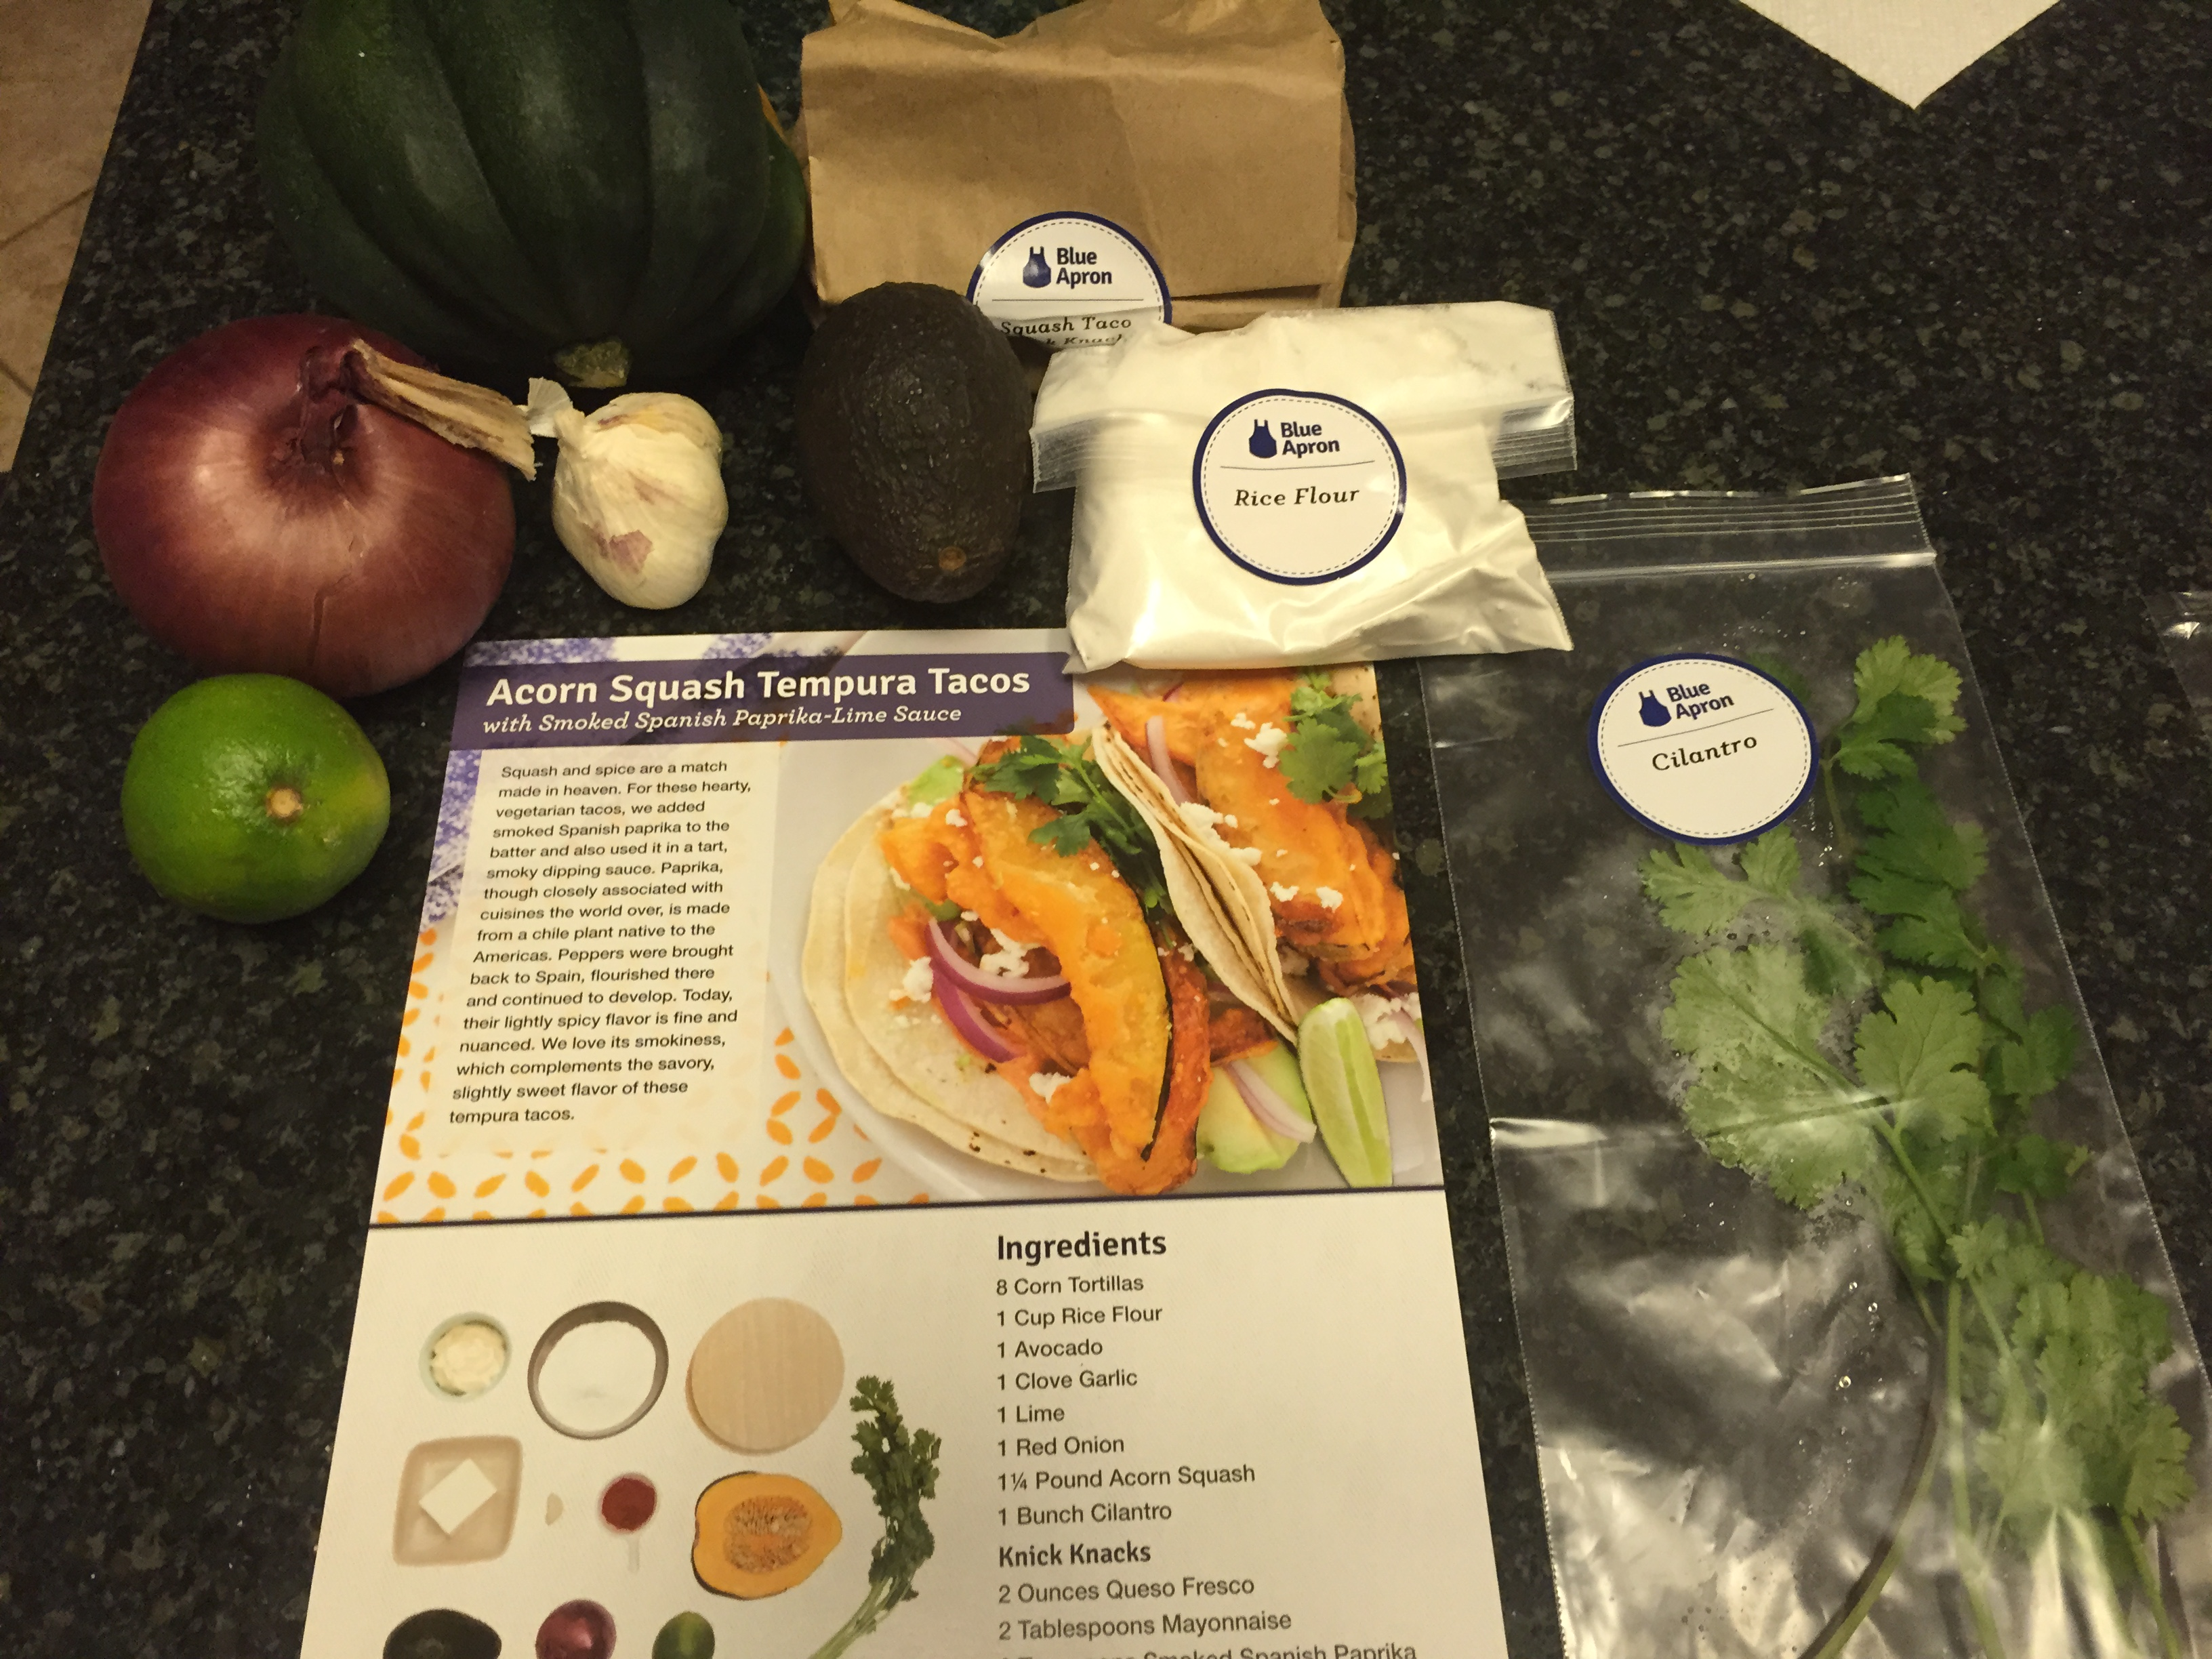 Blue apron tacos - I Immediately Unpacked The Box And Divided My Ingredients By Meal I Love The Single Serving Items One Sprig Of Rosemary A Handful Of Chives